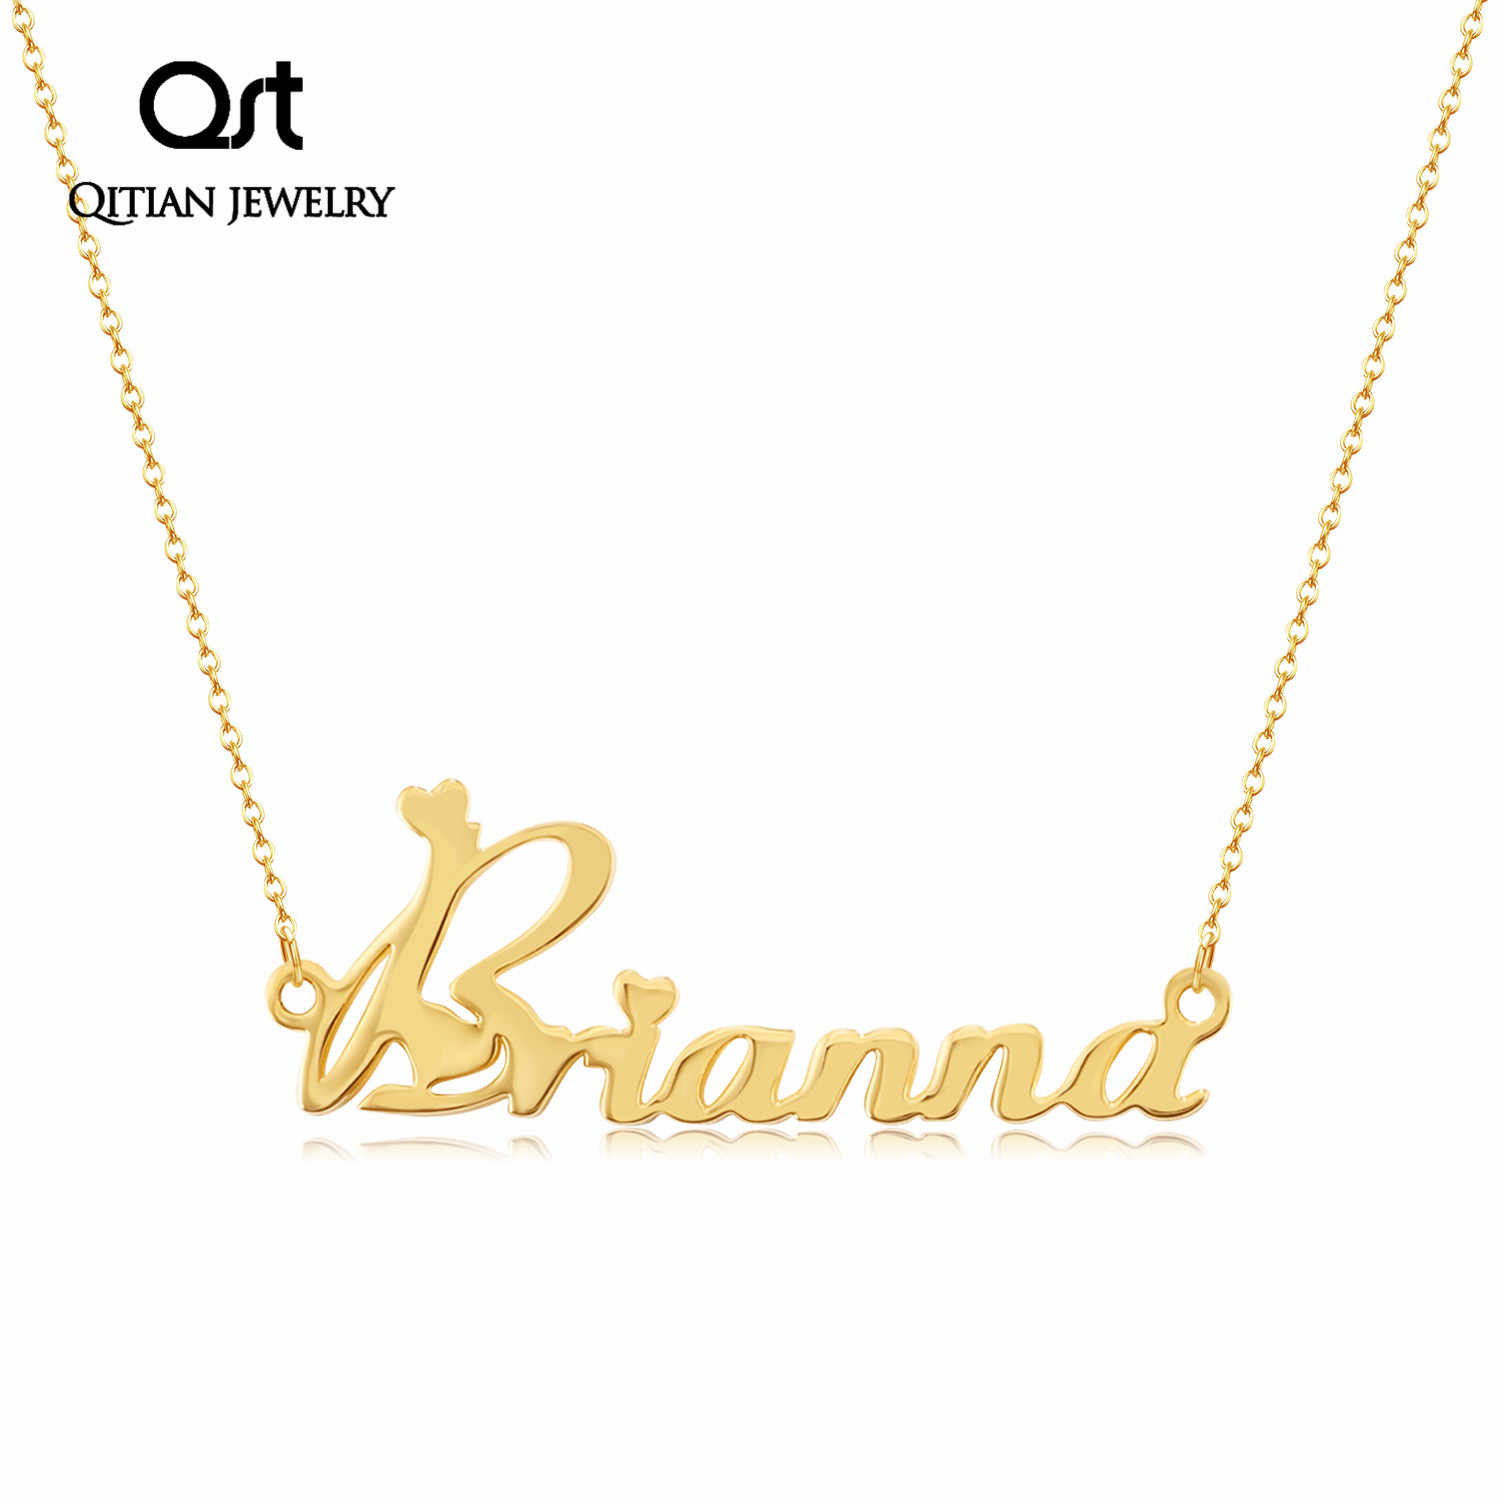 Custom Personalized Name Pendant Necklaces For Women Stainless Steel Custom Gold Chain Nameplate Necklace Jewelry